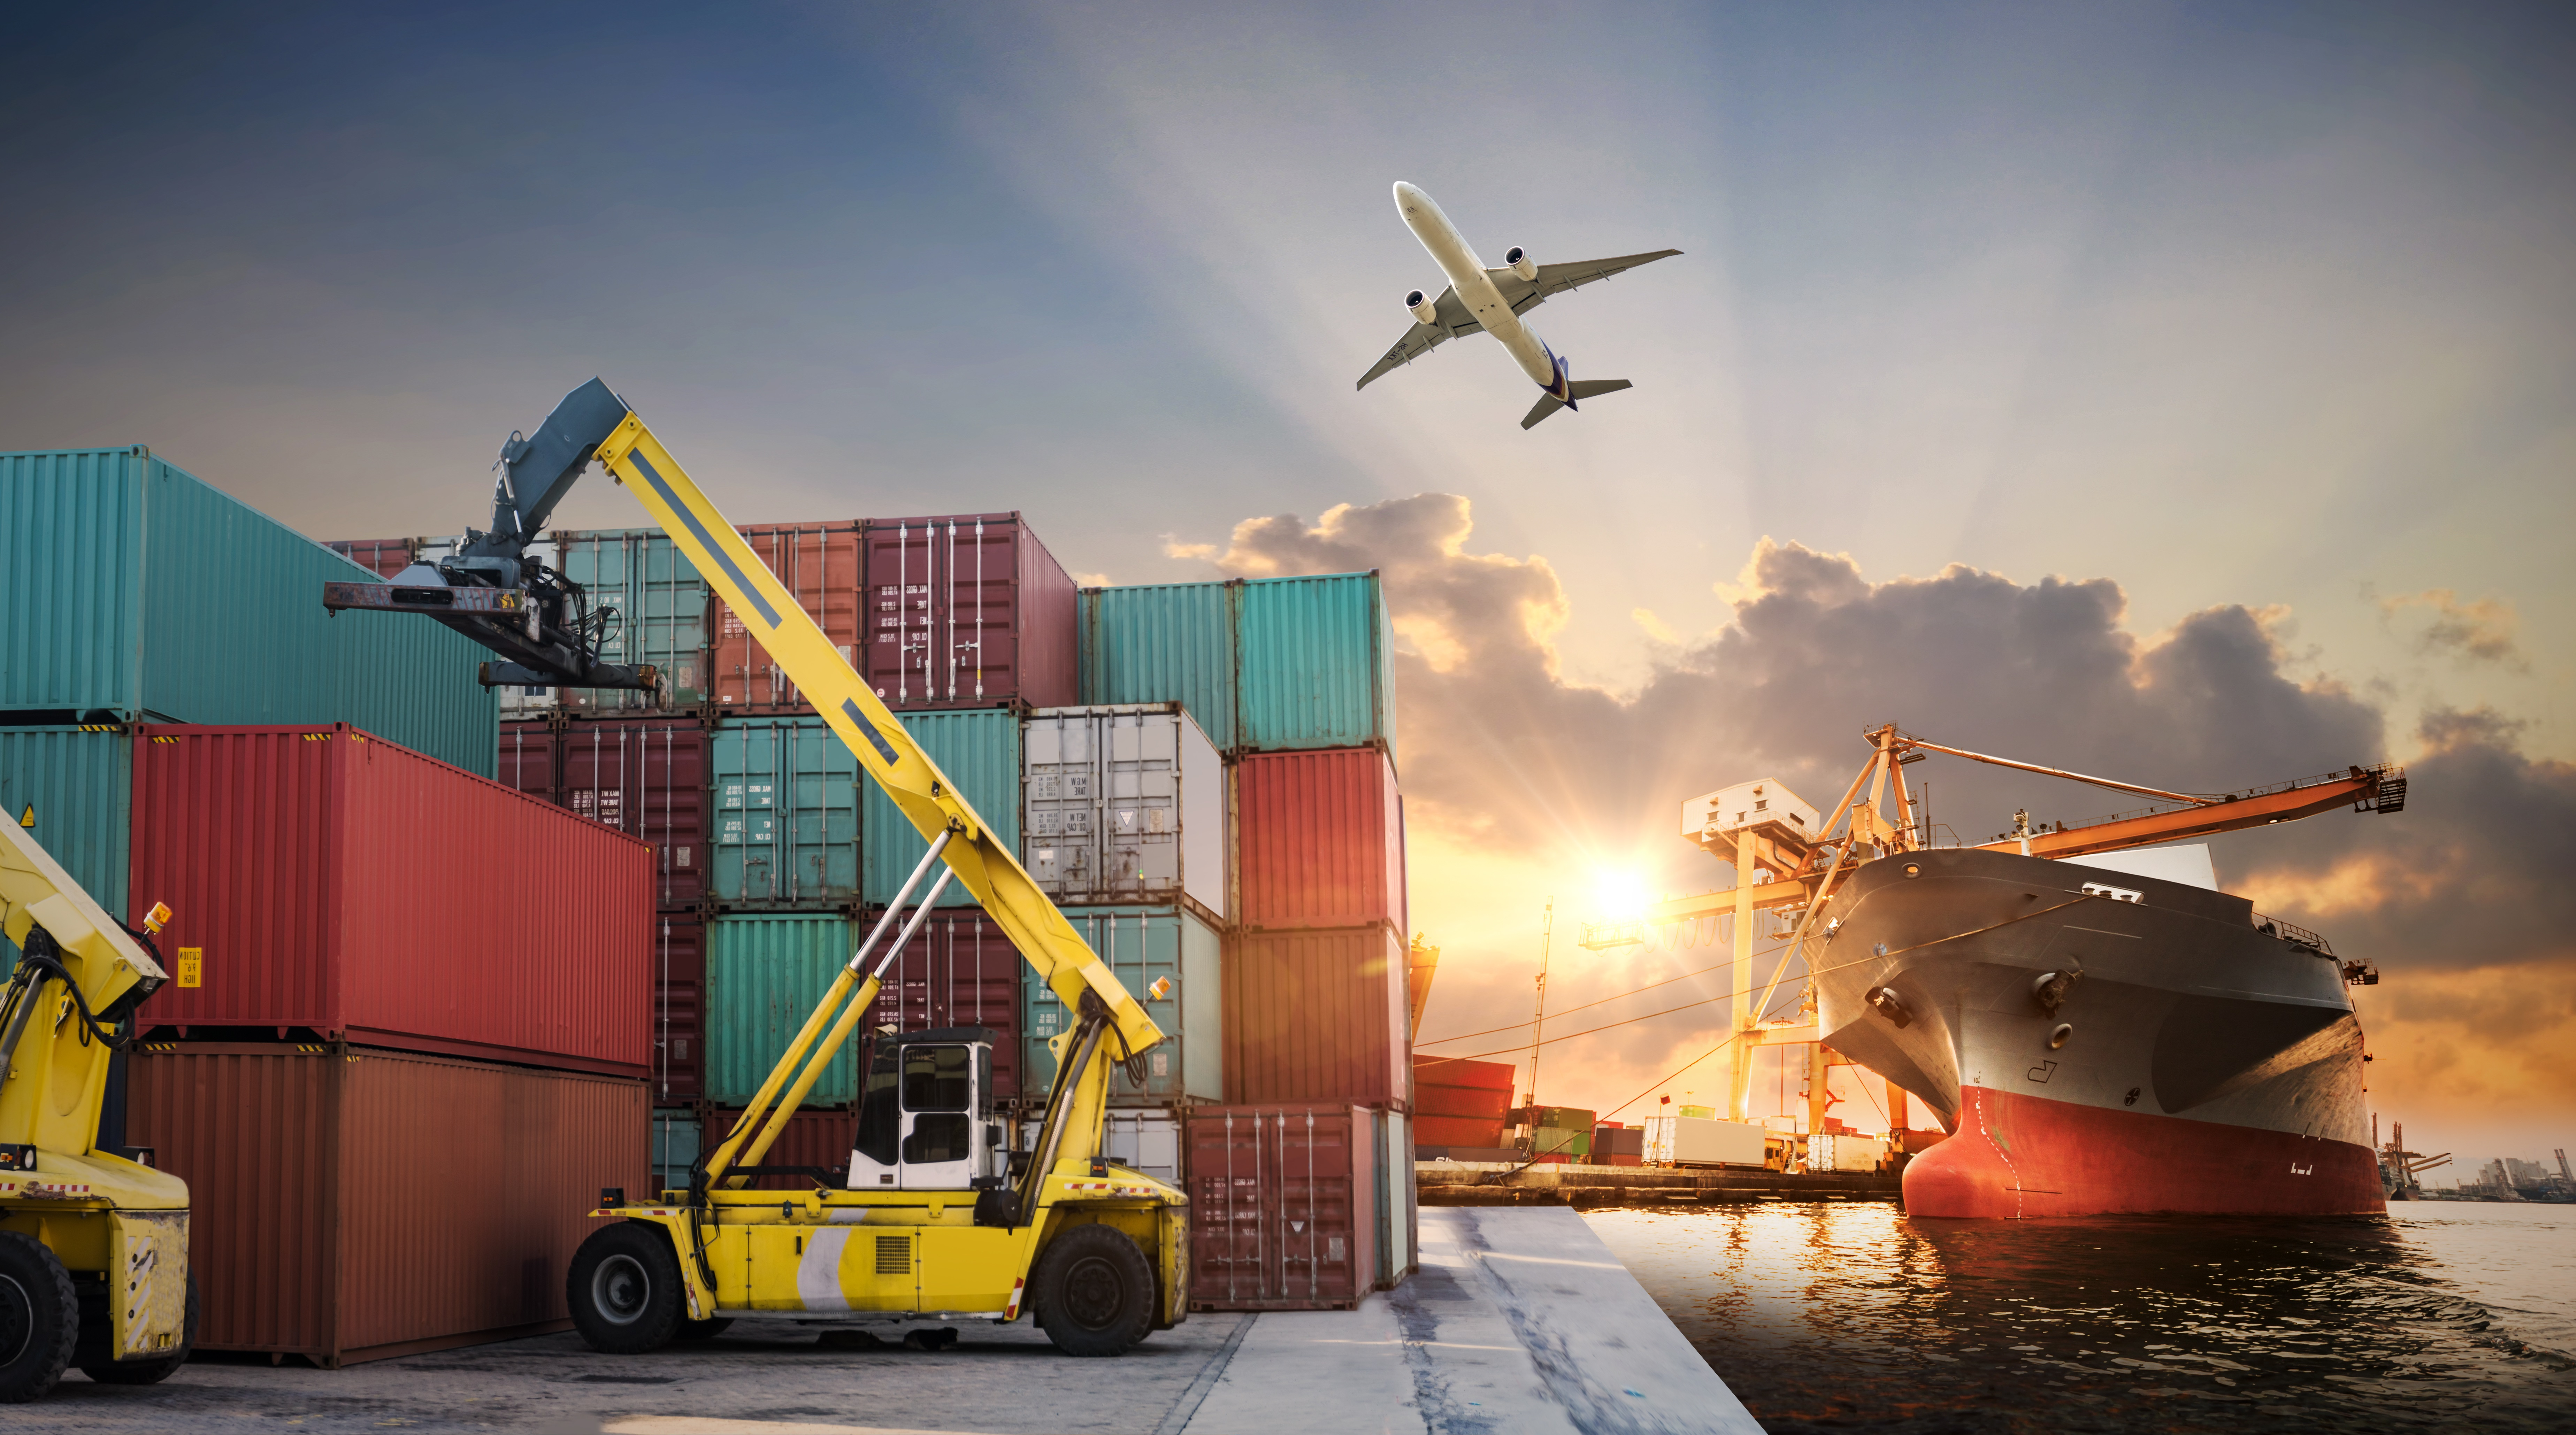 Business Logistics And Transportation Concept Of Container Cargo